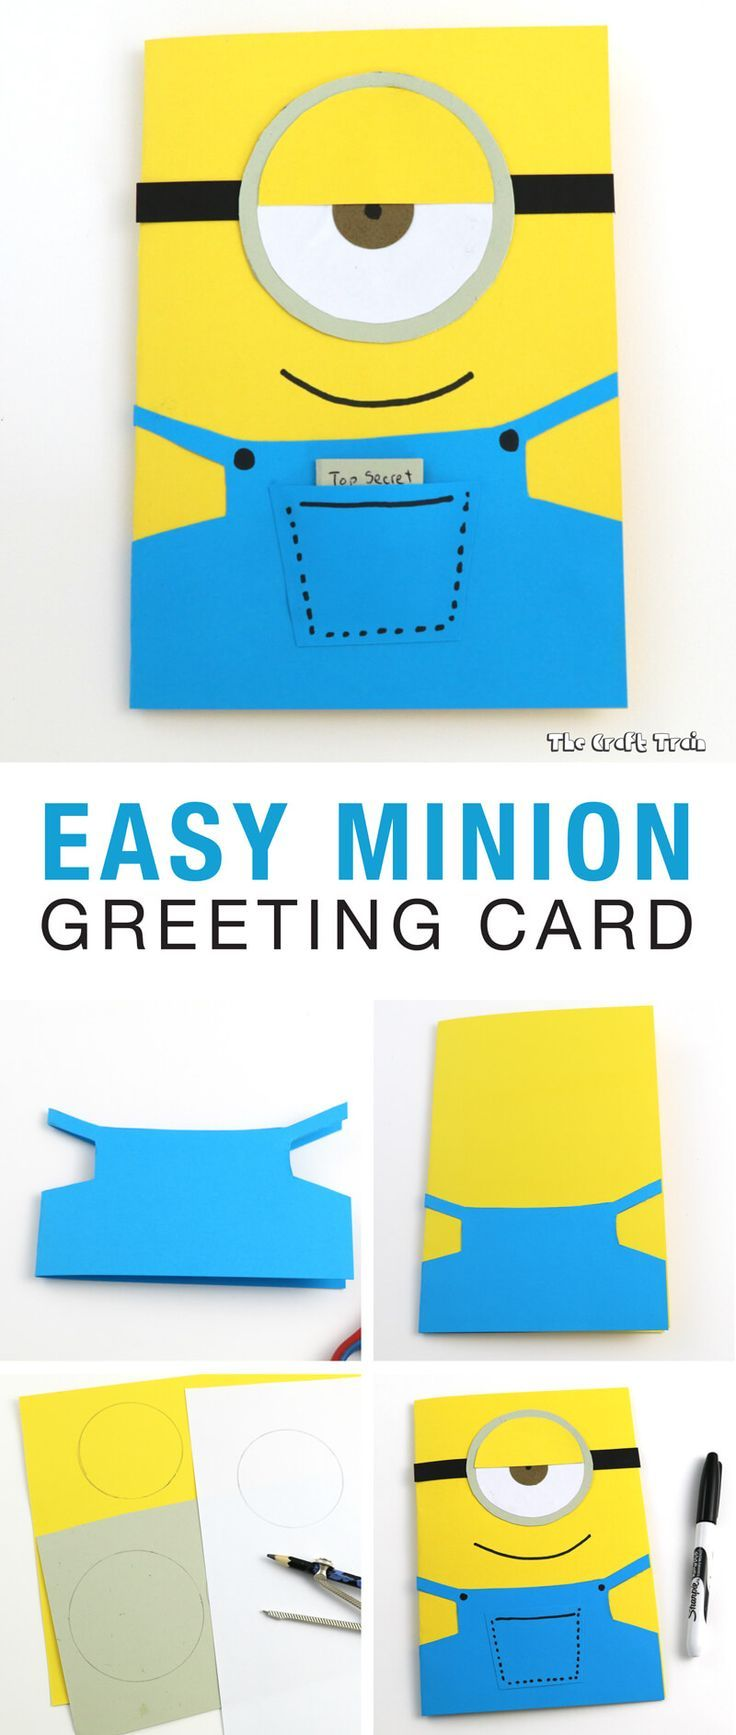 Easy Minion Greeting Card